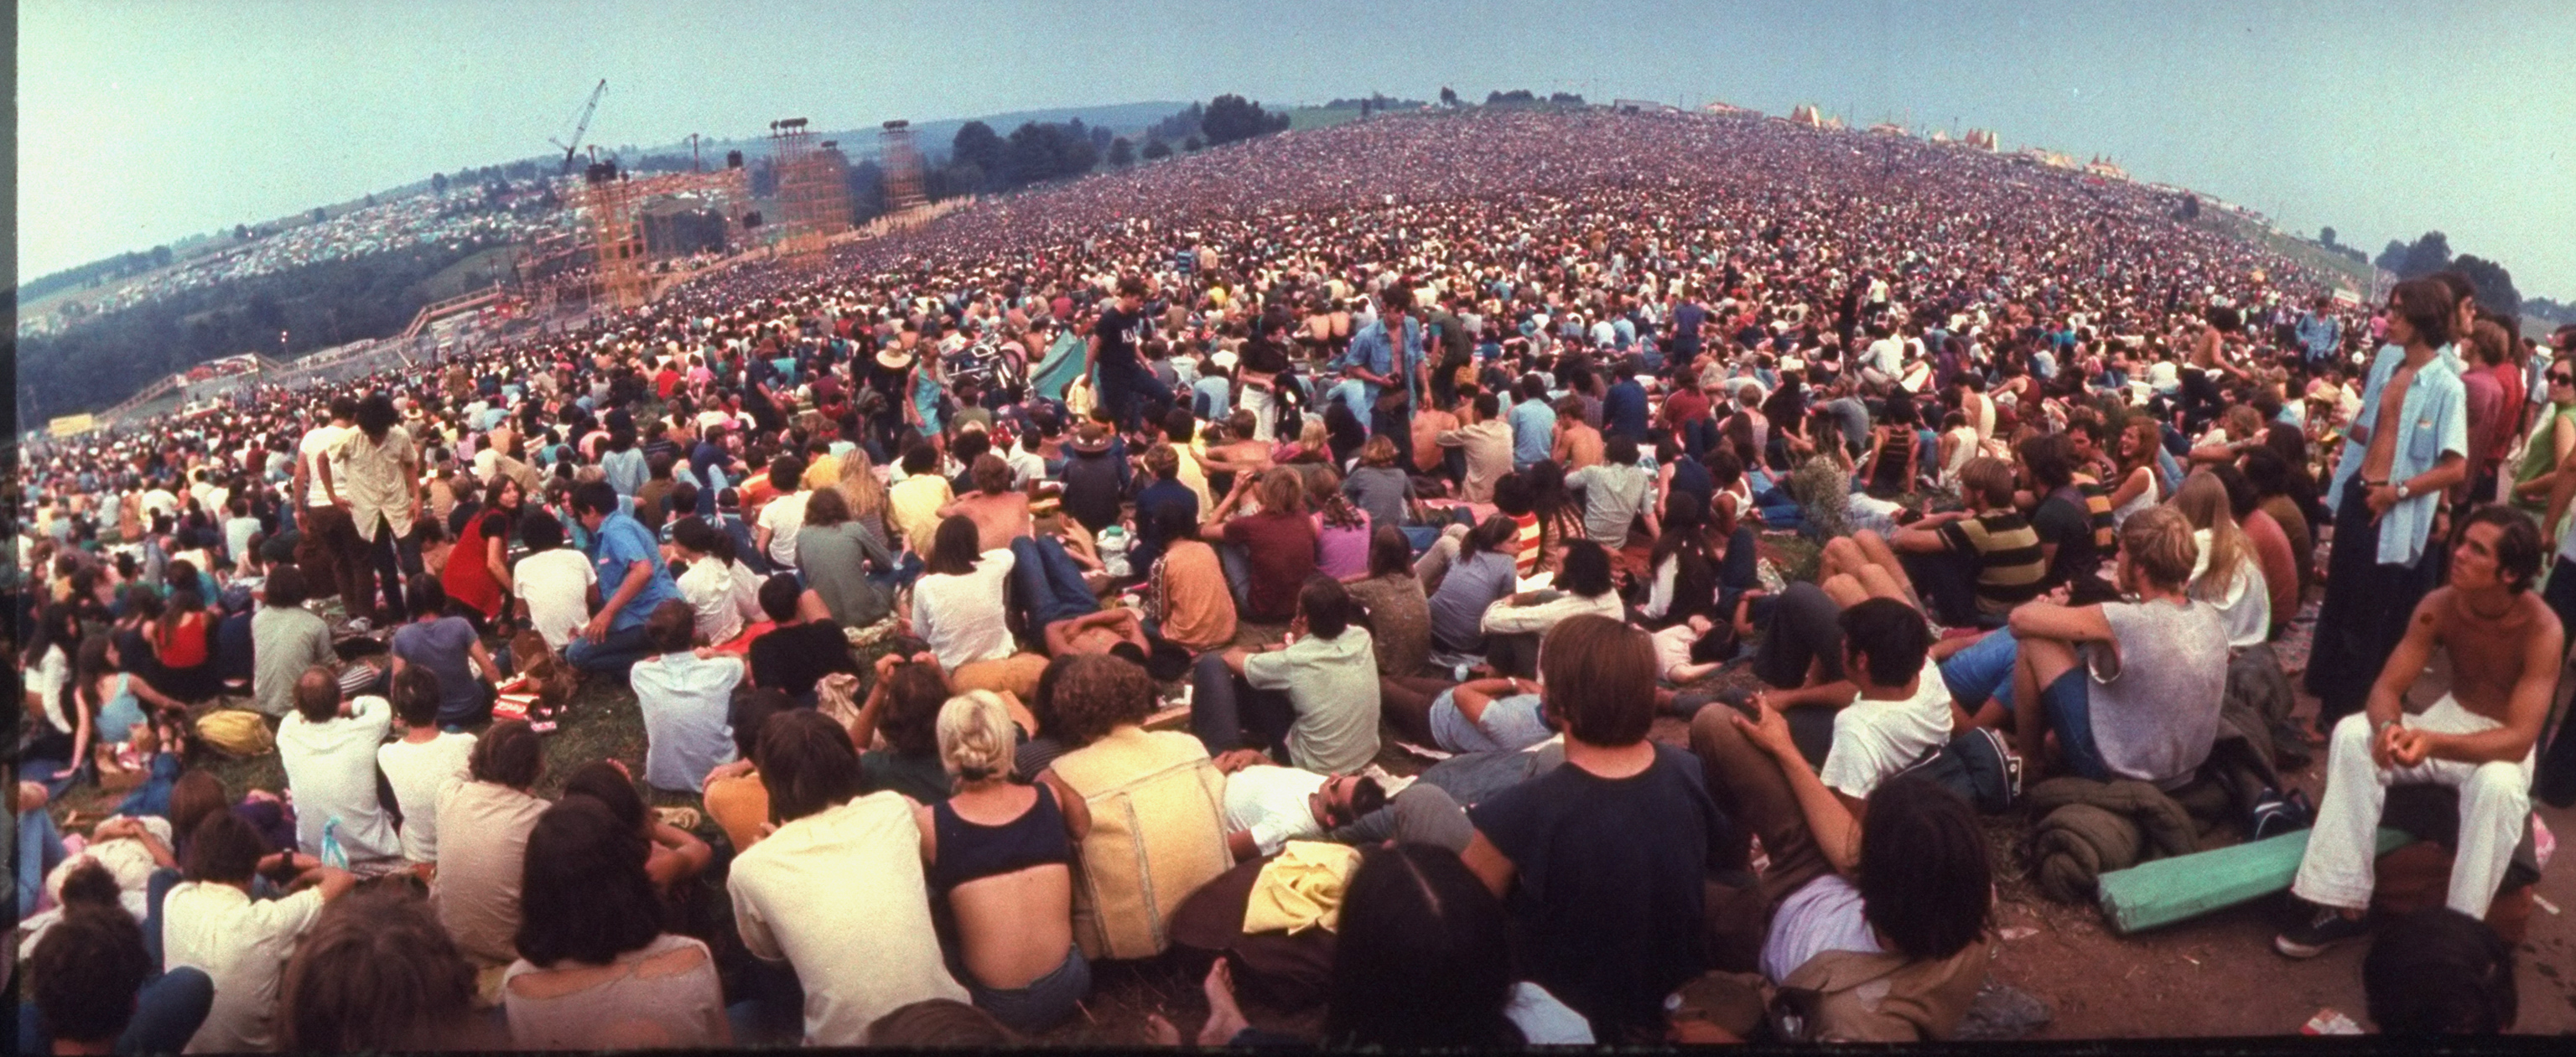 crowd at Woodstock 1969